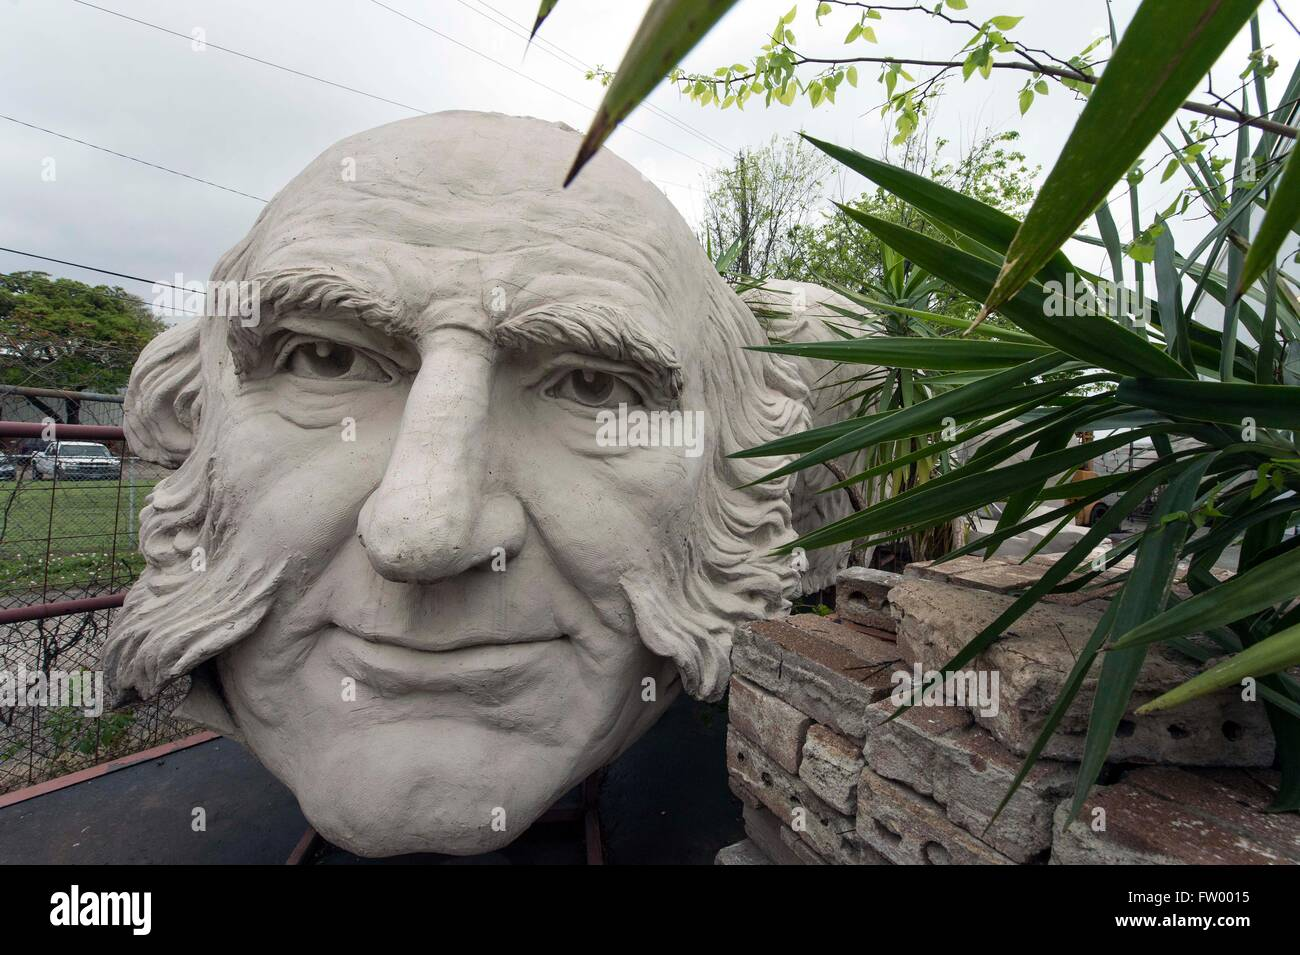 Houston, Texas, USA. 30th Mar, 2016. Presidential heads by sculptor David Adickes are stored at the Adickes Sculpturworx Studio until a time when a permanent home is found for them. Credit:  Brian Cahn/ZUMA Wire/Alamy Live News Stock Photo